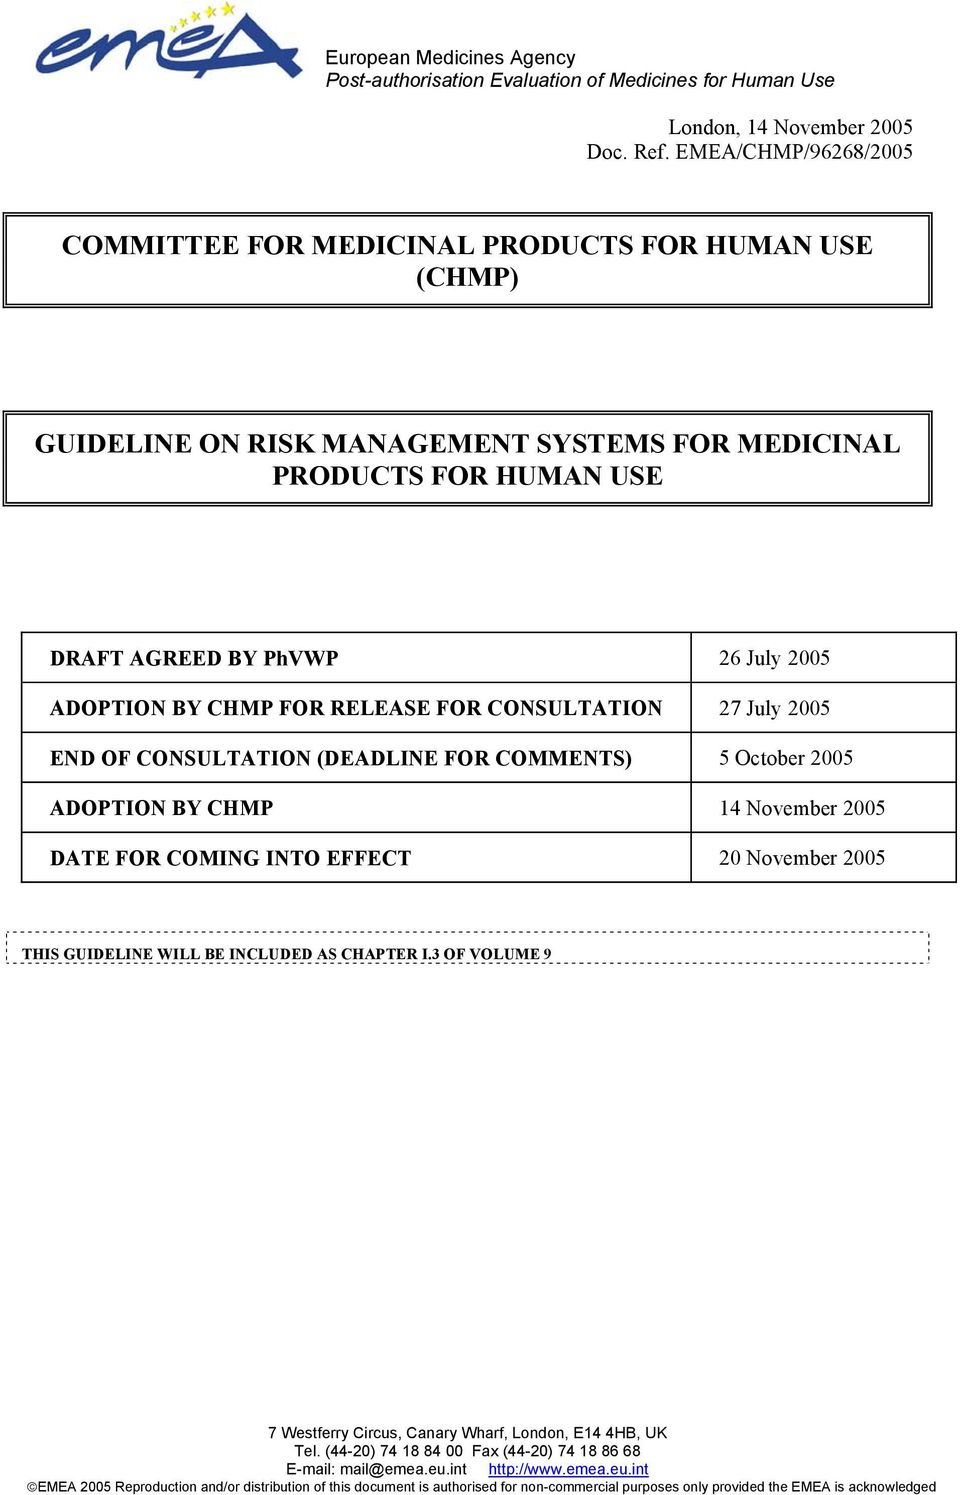 CHMP FOR RELEASE FOR CONSULTATION 27 July 2005 END OF CONSULTATION (DEADLINE FOR COMMENTS) 5 October 2005 ADOPTION BY CHMP 14 November 2005 DATE FOR COMING INTO EFFECT 20 November 2005 THIS GUIDELINE